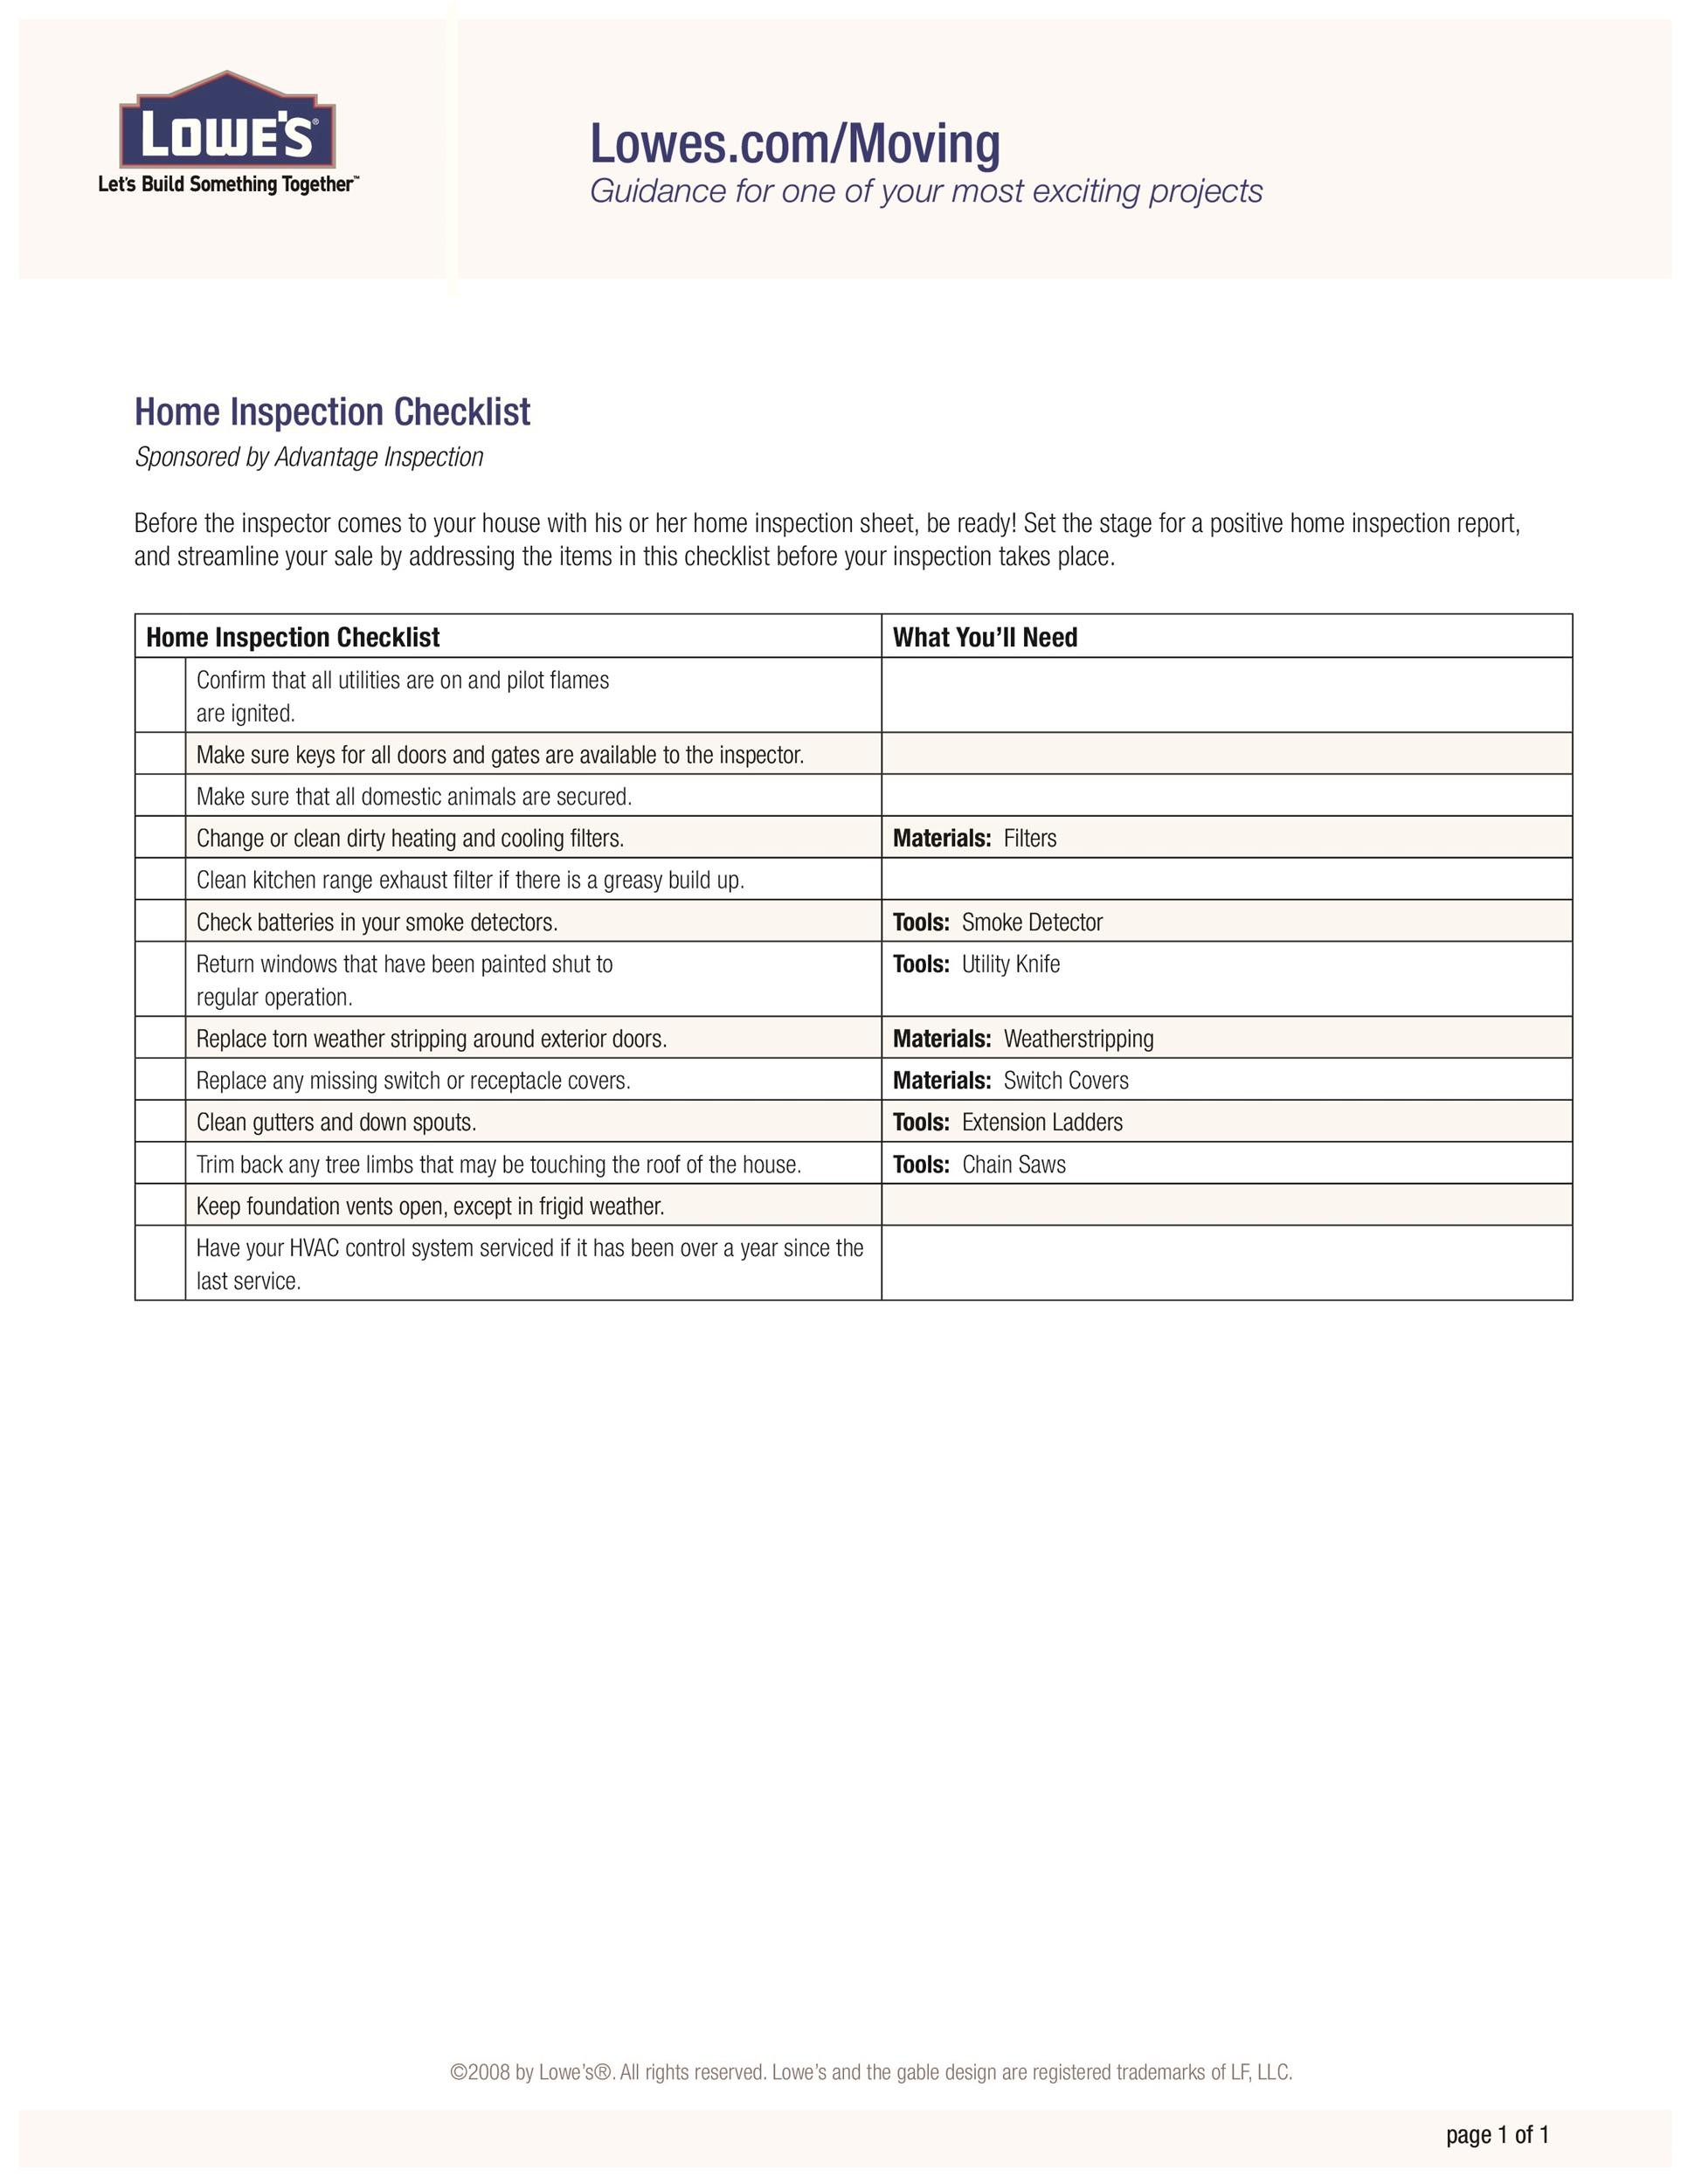 Printable Home Inspection Checklists Word Pdf  Template Lab